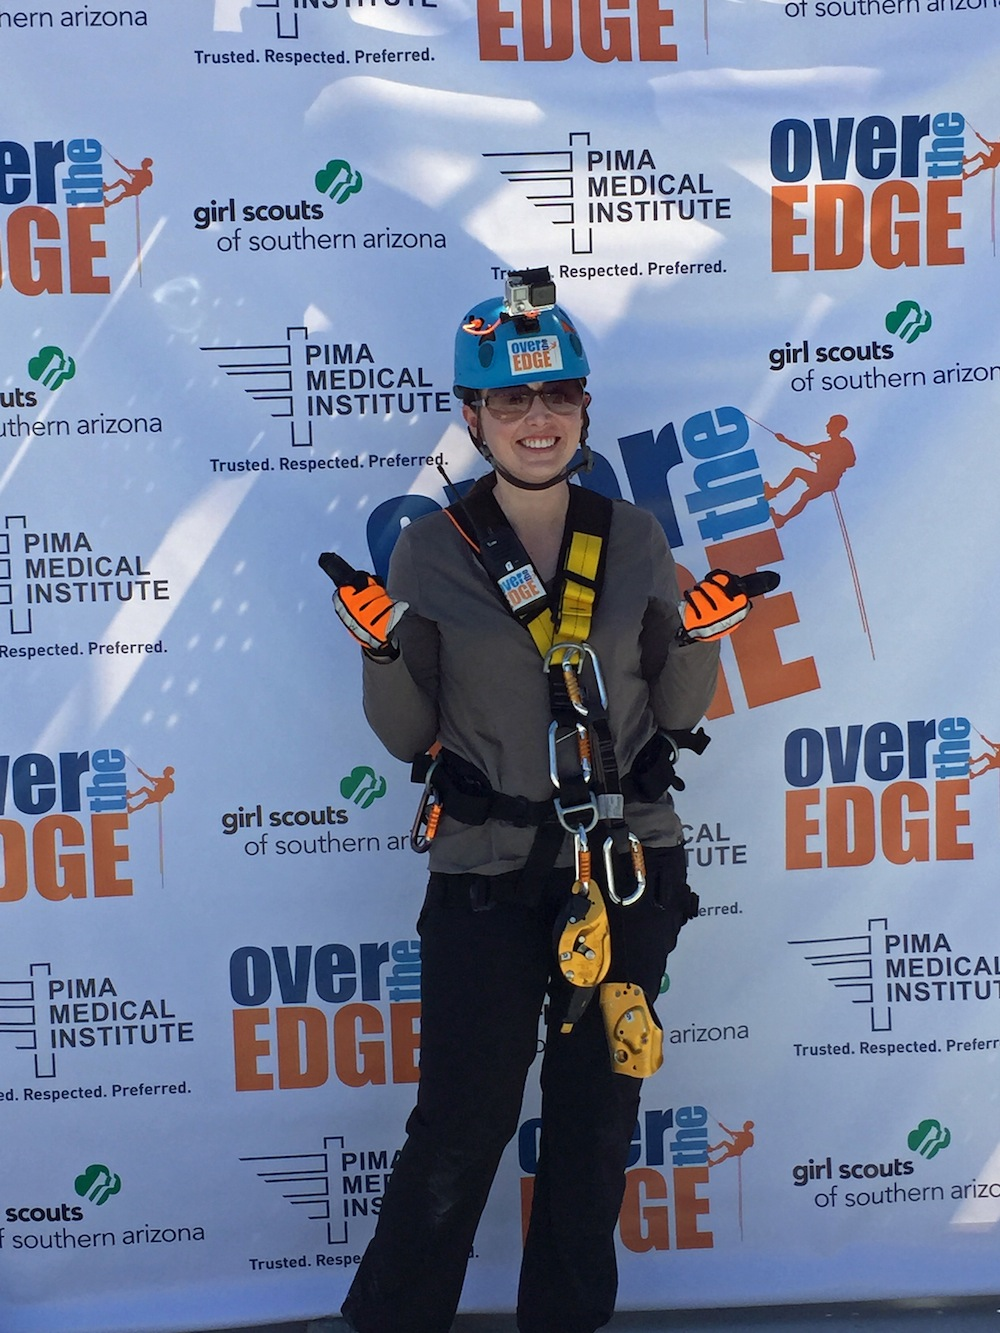 I went over the edge for girl scouts of southern arizona